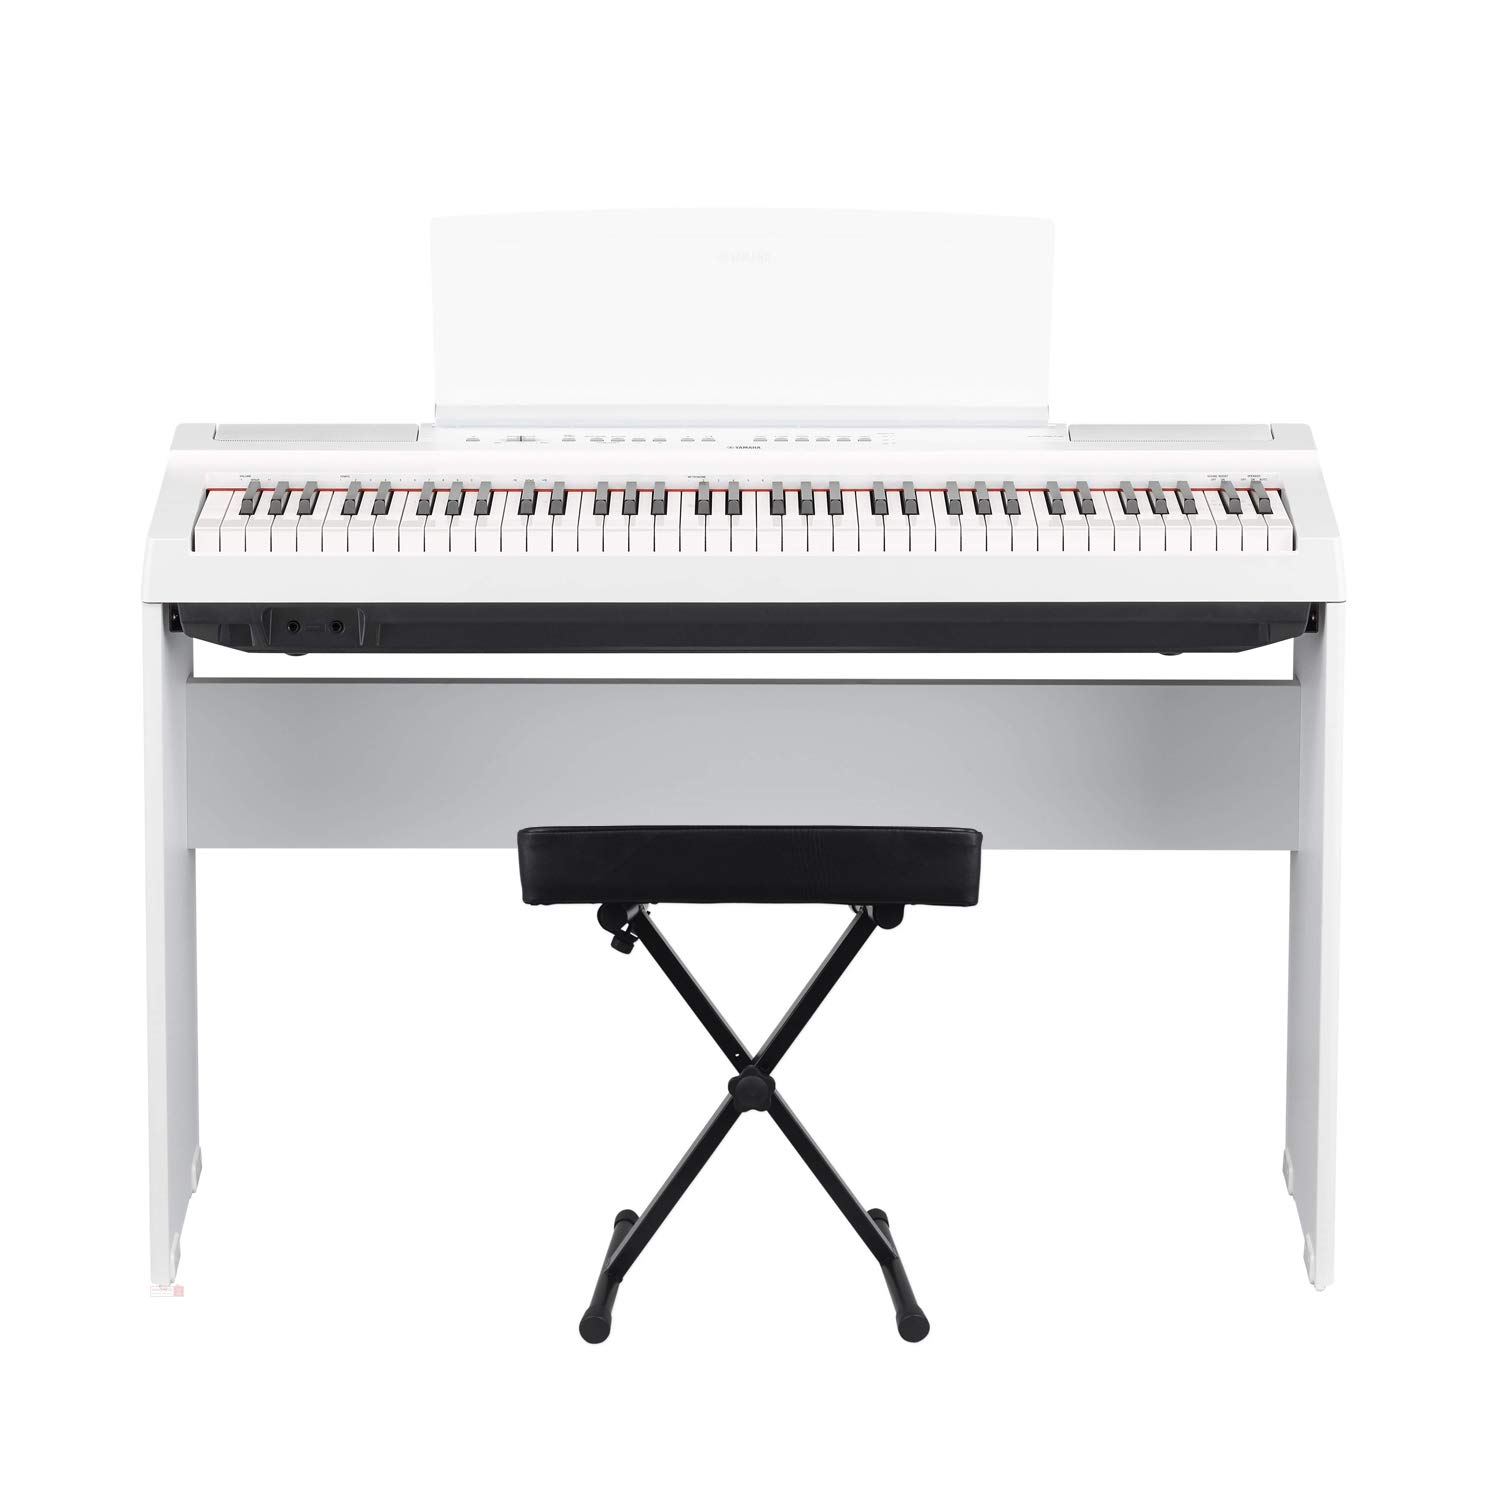 Yamaha P121 73-Key Weighted Action Digital Piano - White with Matching L121 White Furniture Stand and Bench by Yamaha Bundle (Image #2)